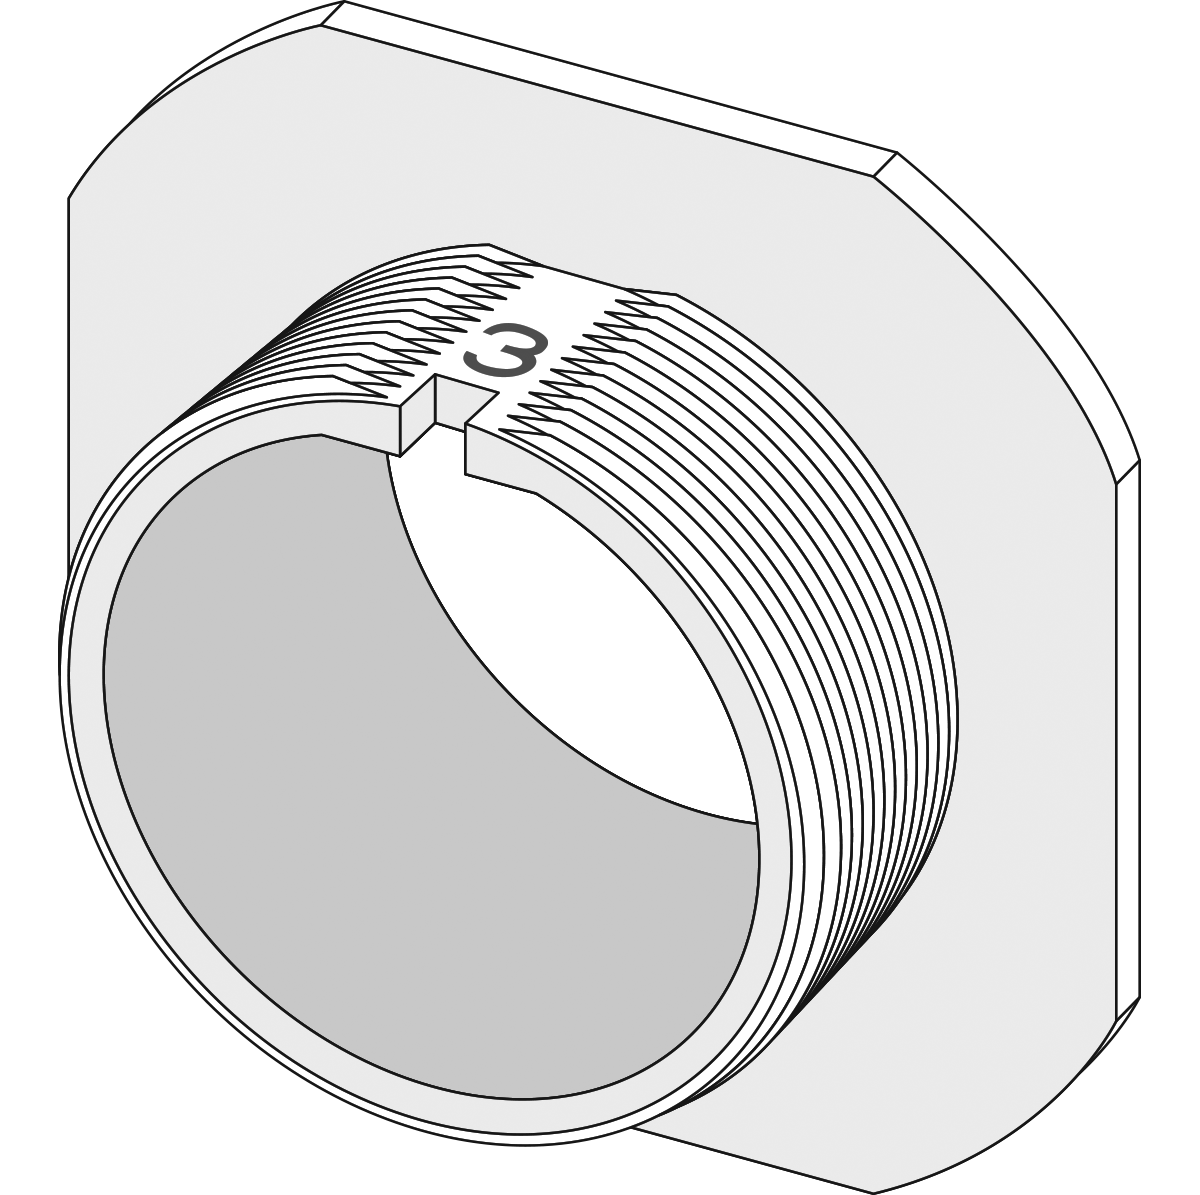 3-flange-and-thread-mount.png